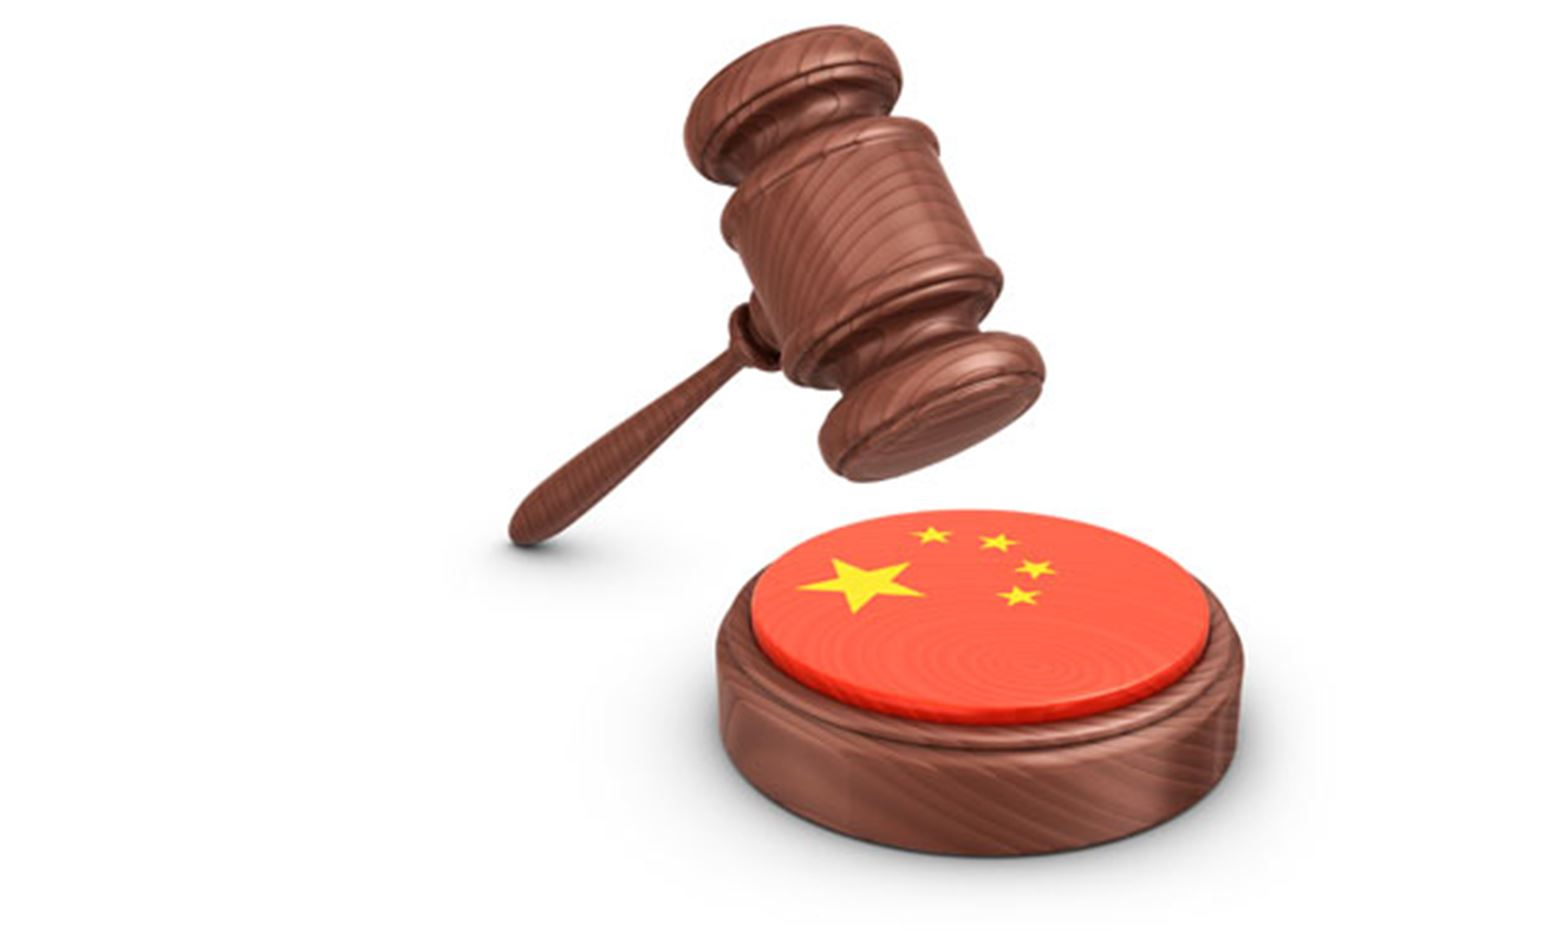 The West Needs To Better Understand Law and Order in China